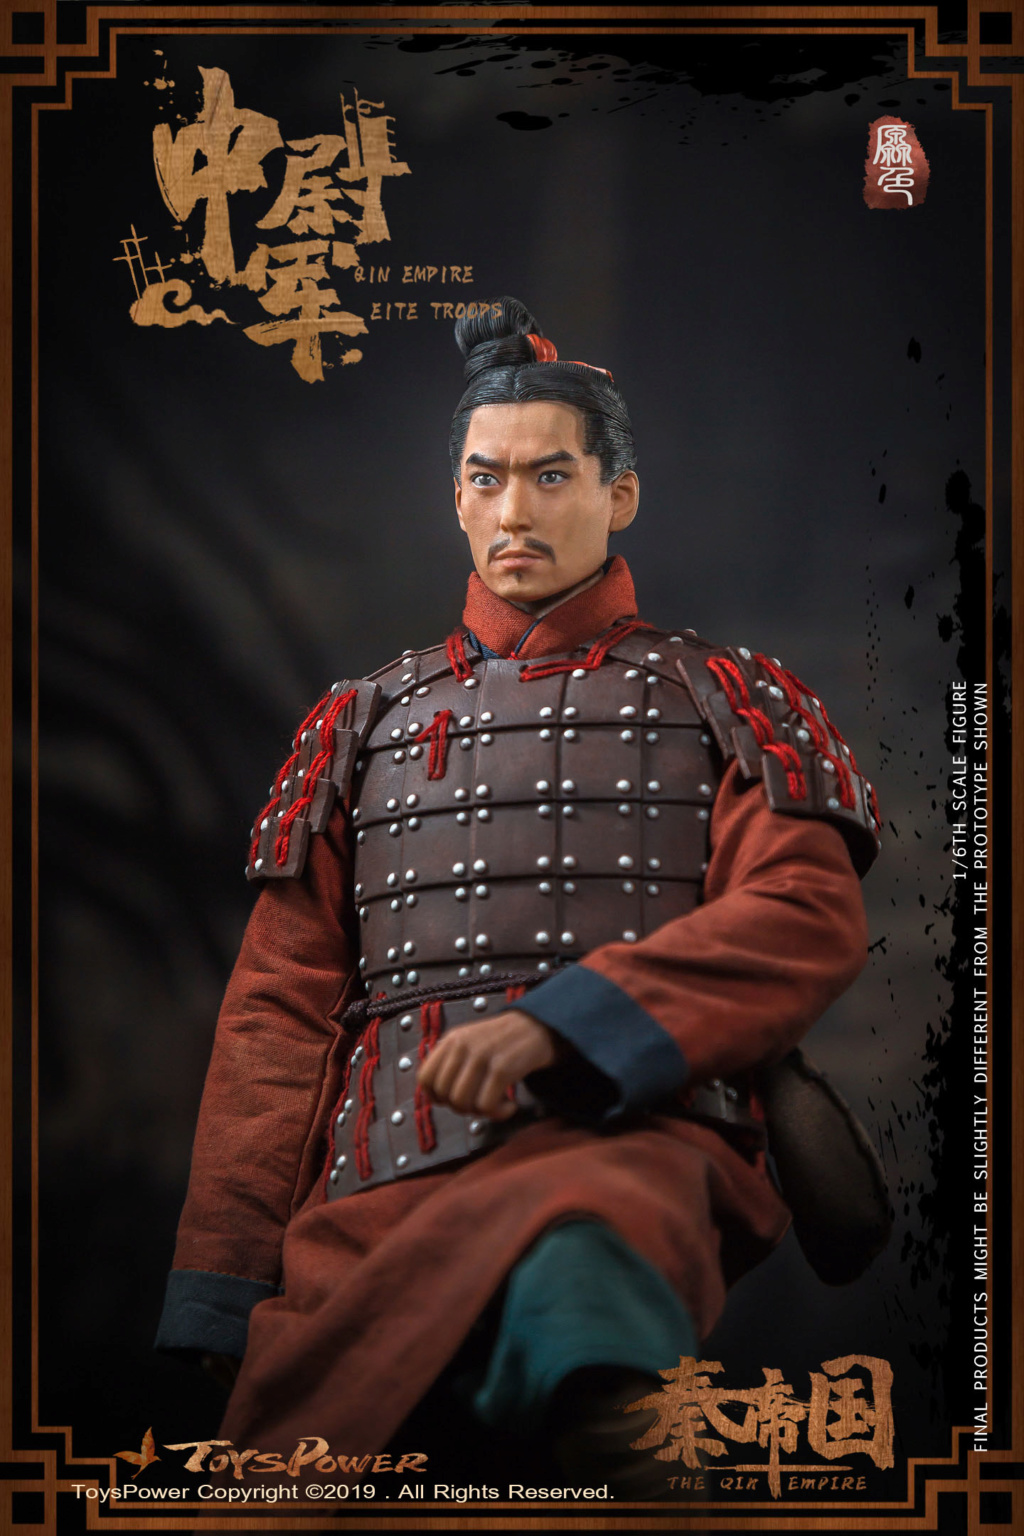 Army - NEW PRODUCT: Toyspower: 1/6 Qin Empire Lieutenant Army (Terracotta Warriors) movable doll CT012# (update armor piece drawing) 1898